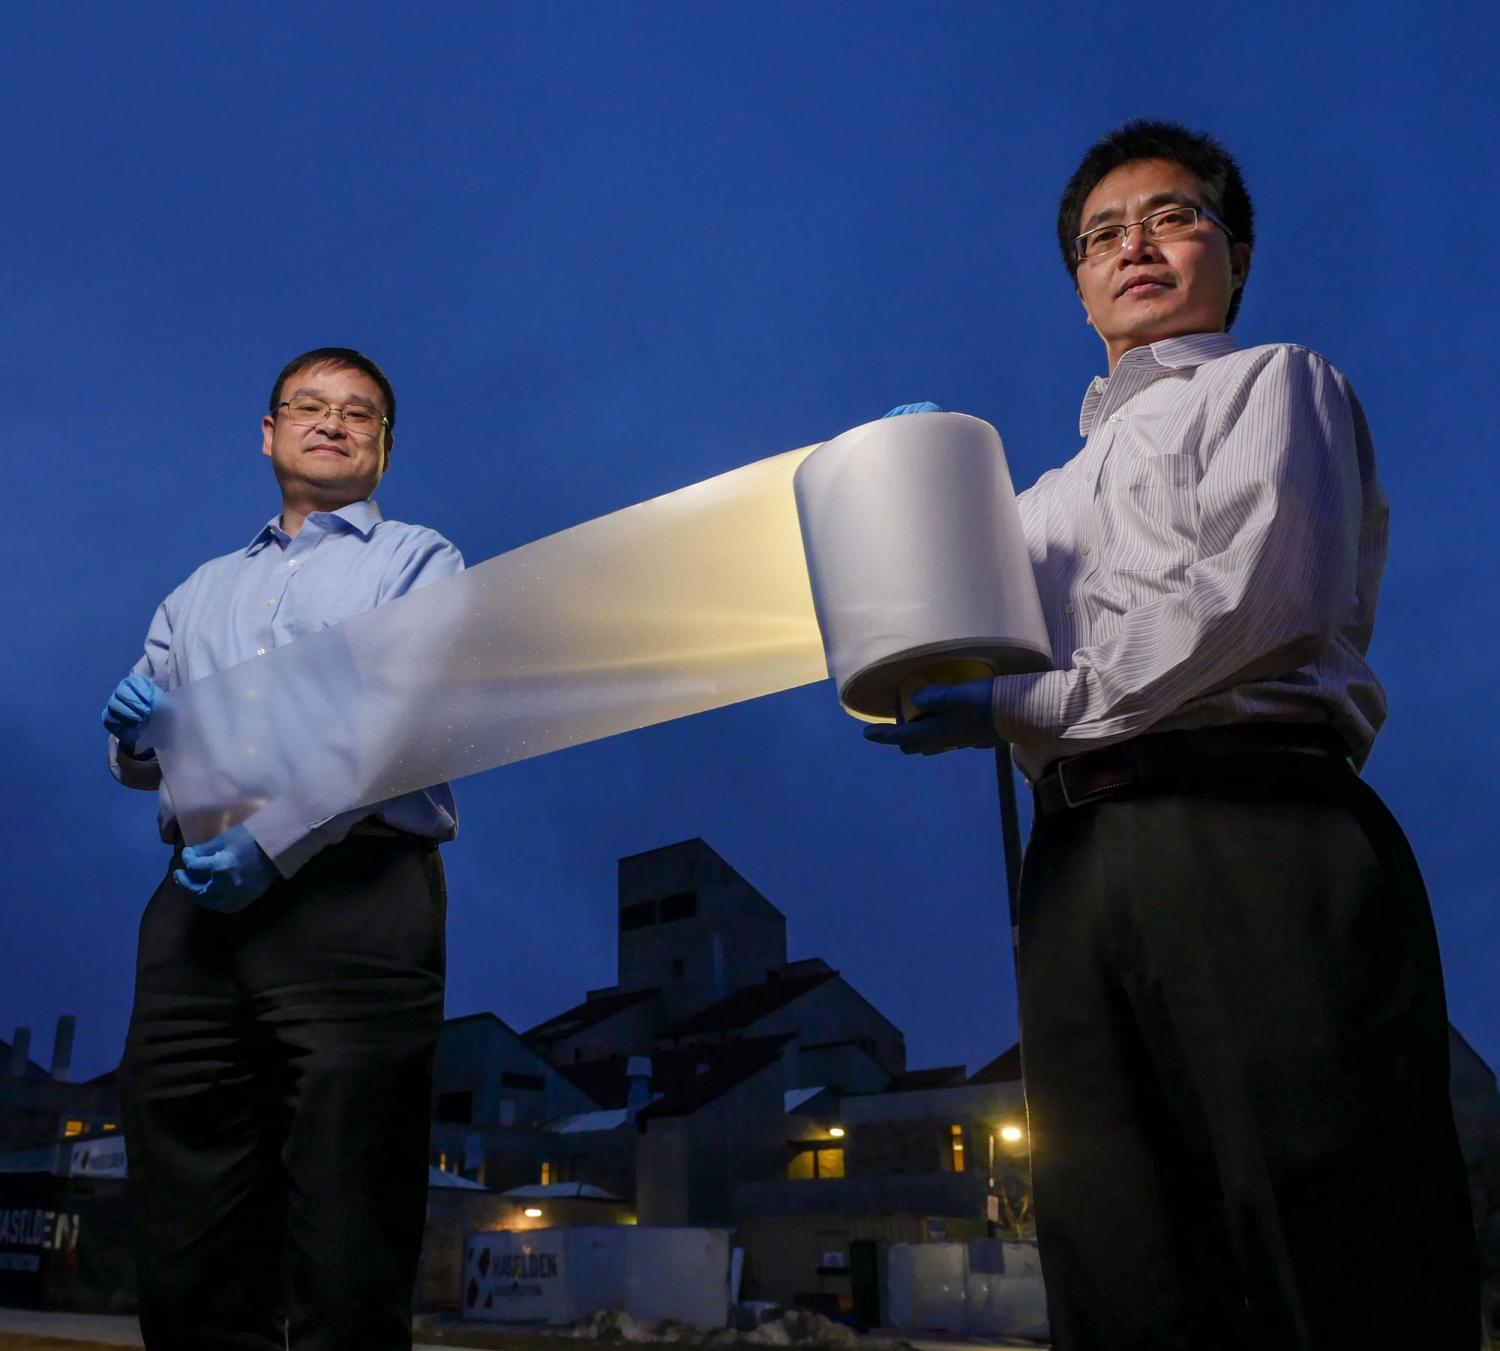 Ronggui Yang and Xiaobo Yin holding cooling material